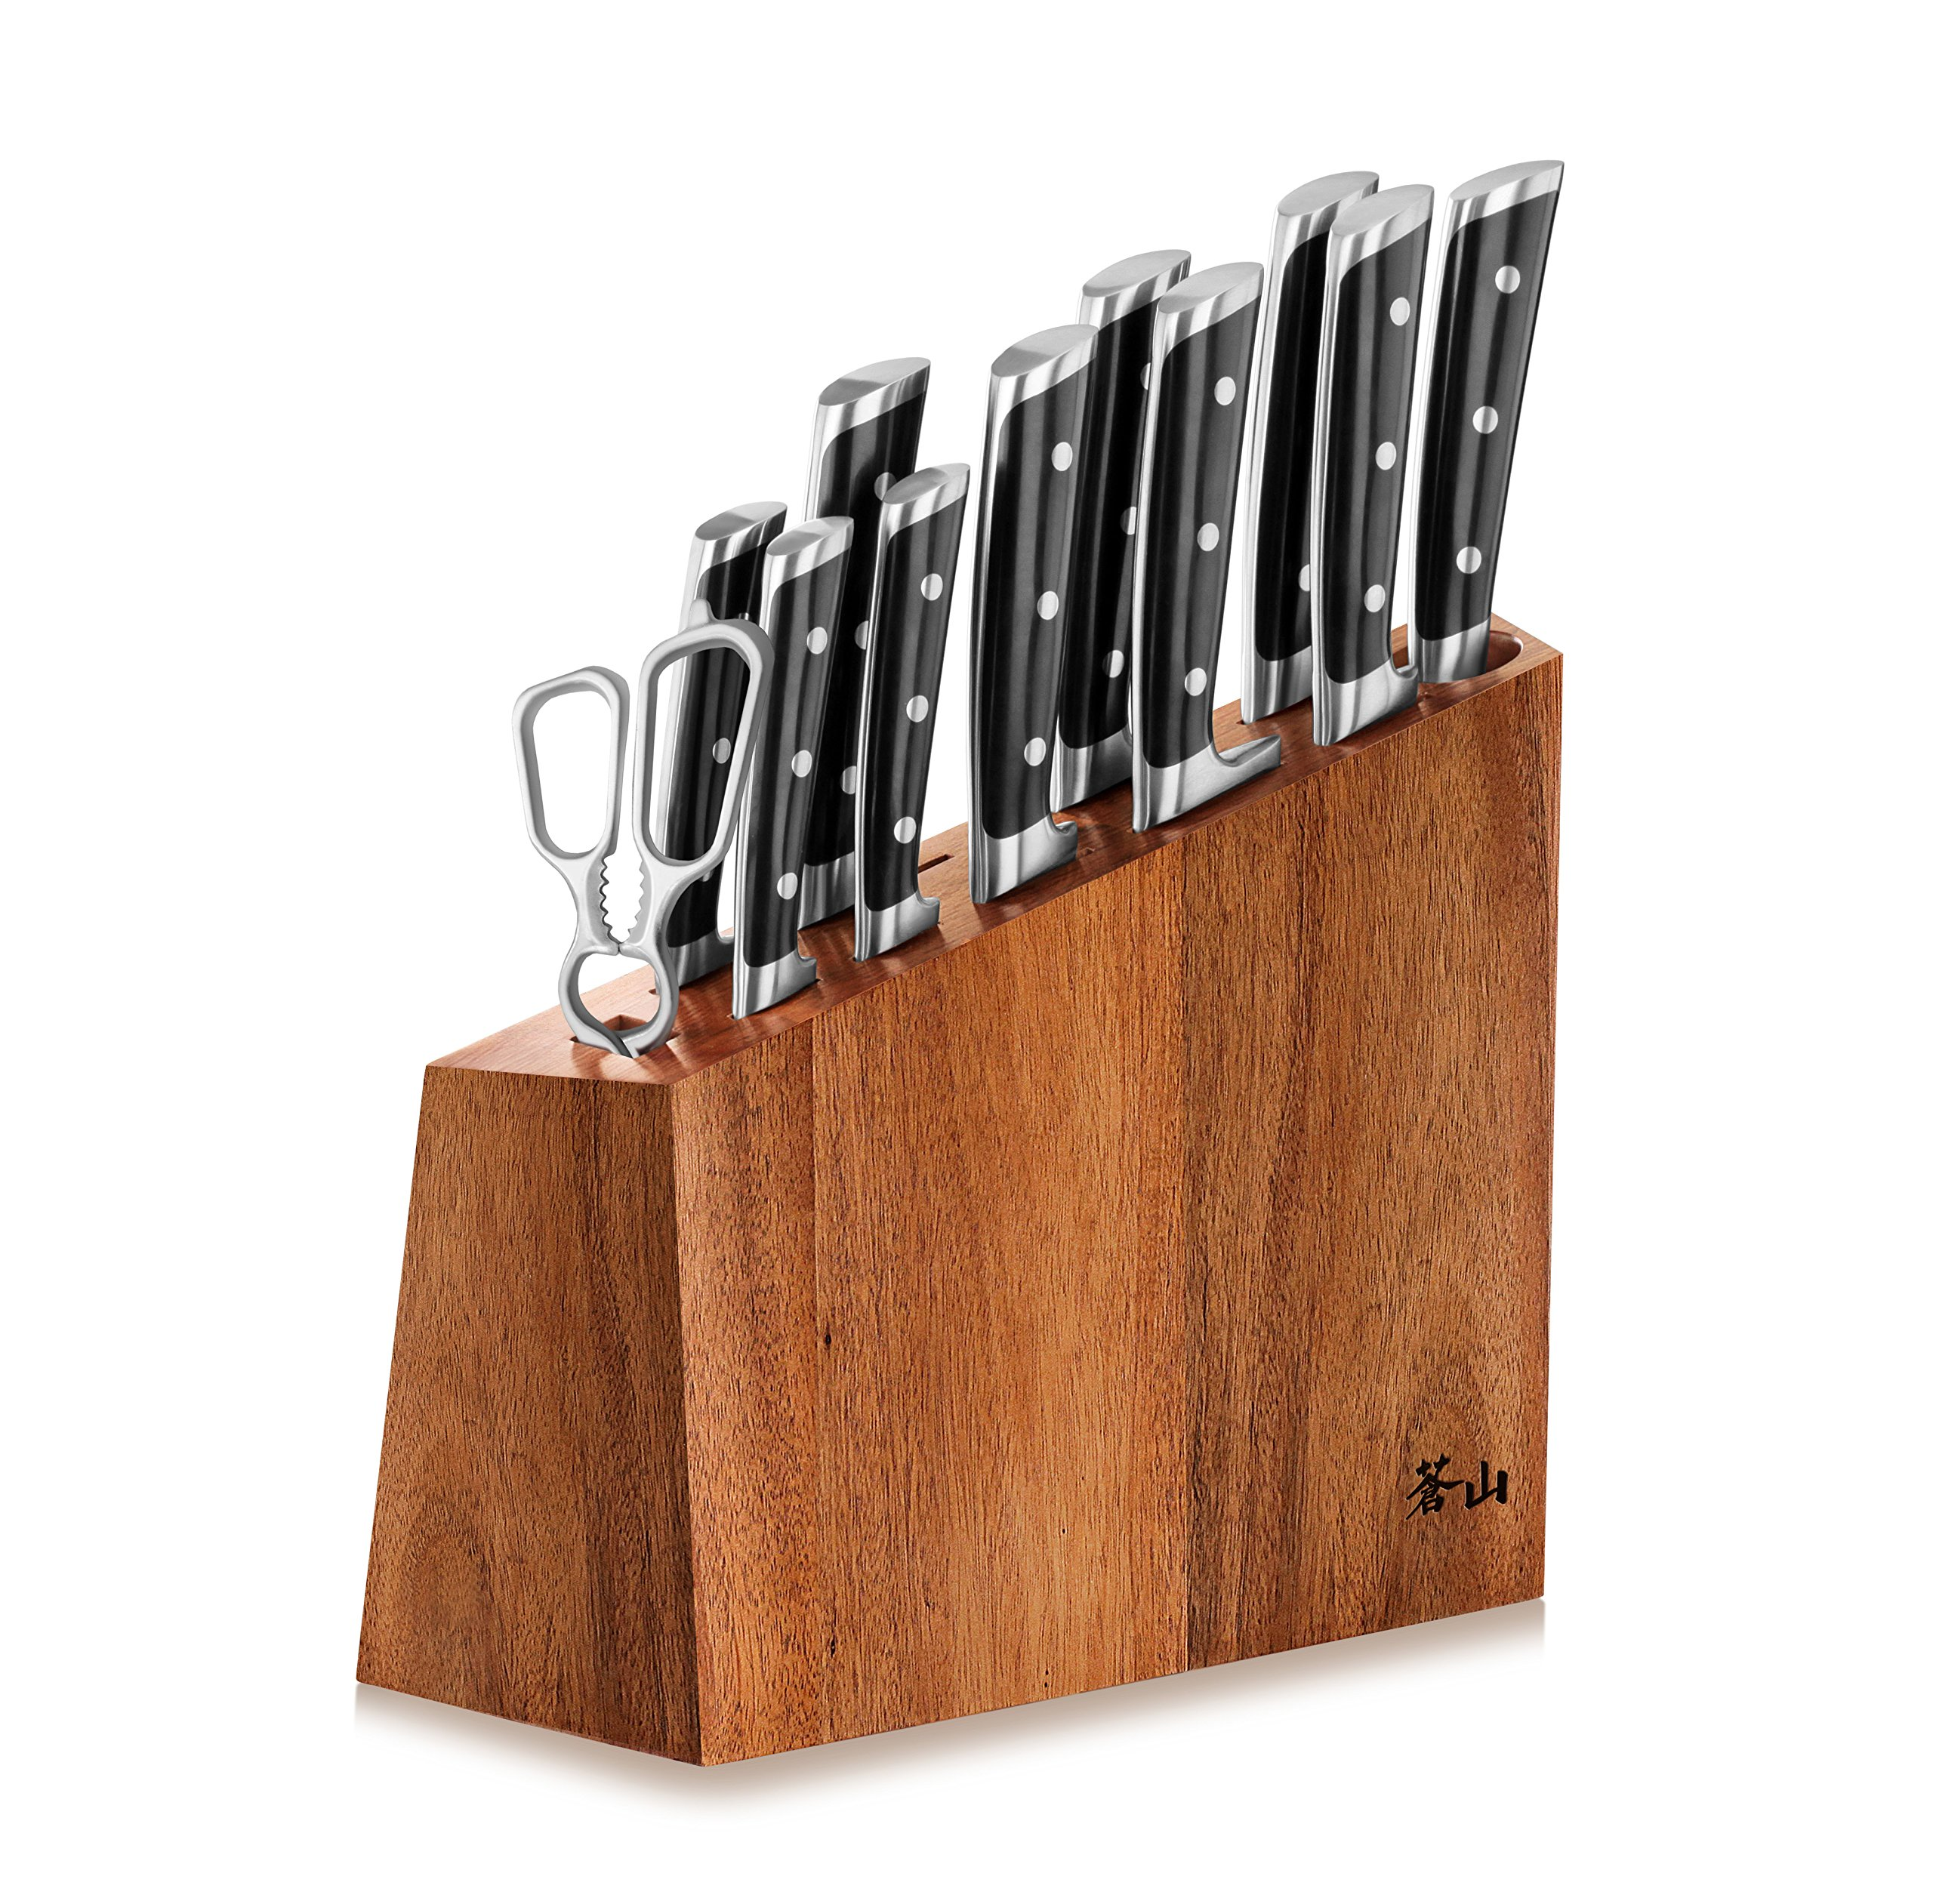 Cangshang S Series 60140 12-Piece German Steel Forged Knife Block Set